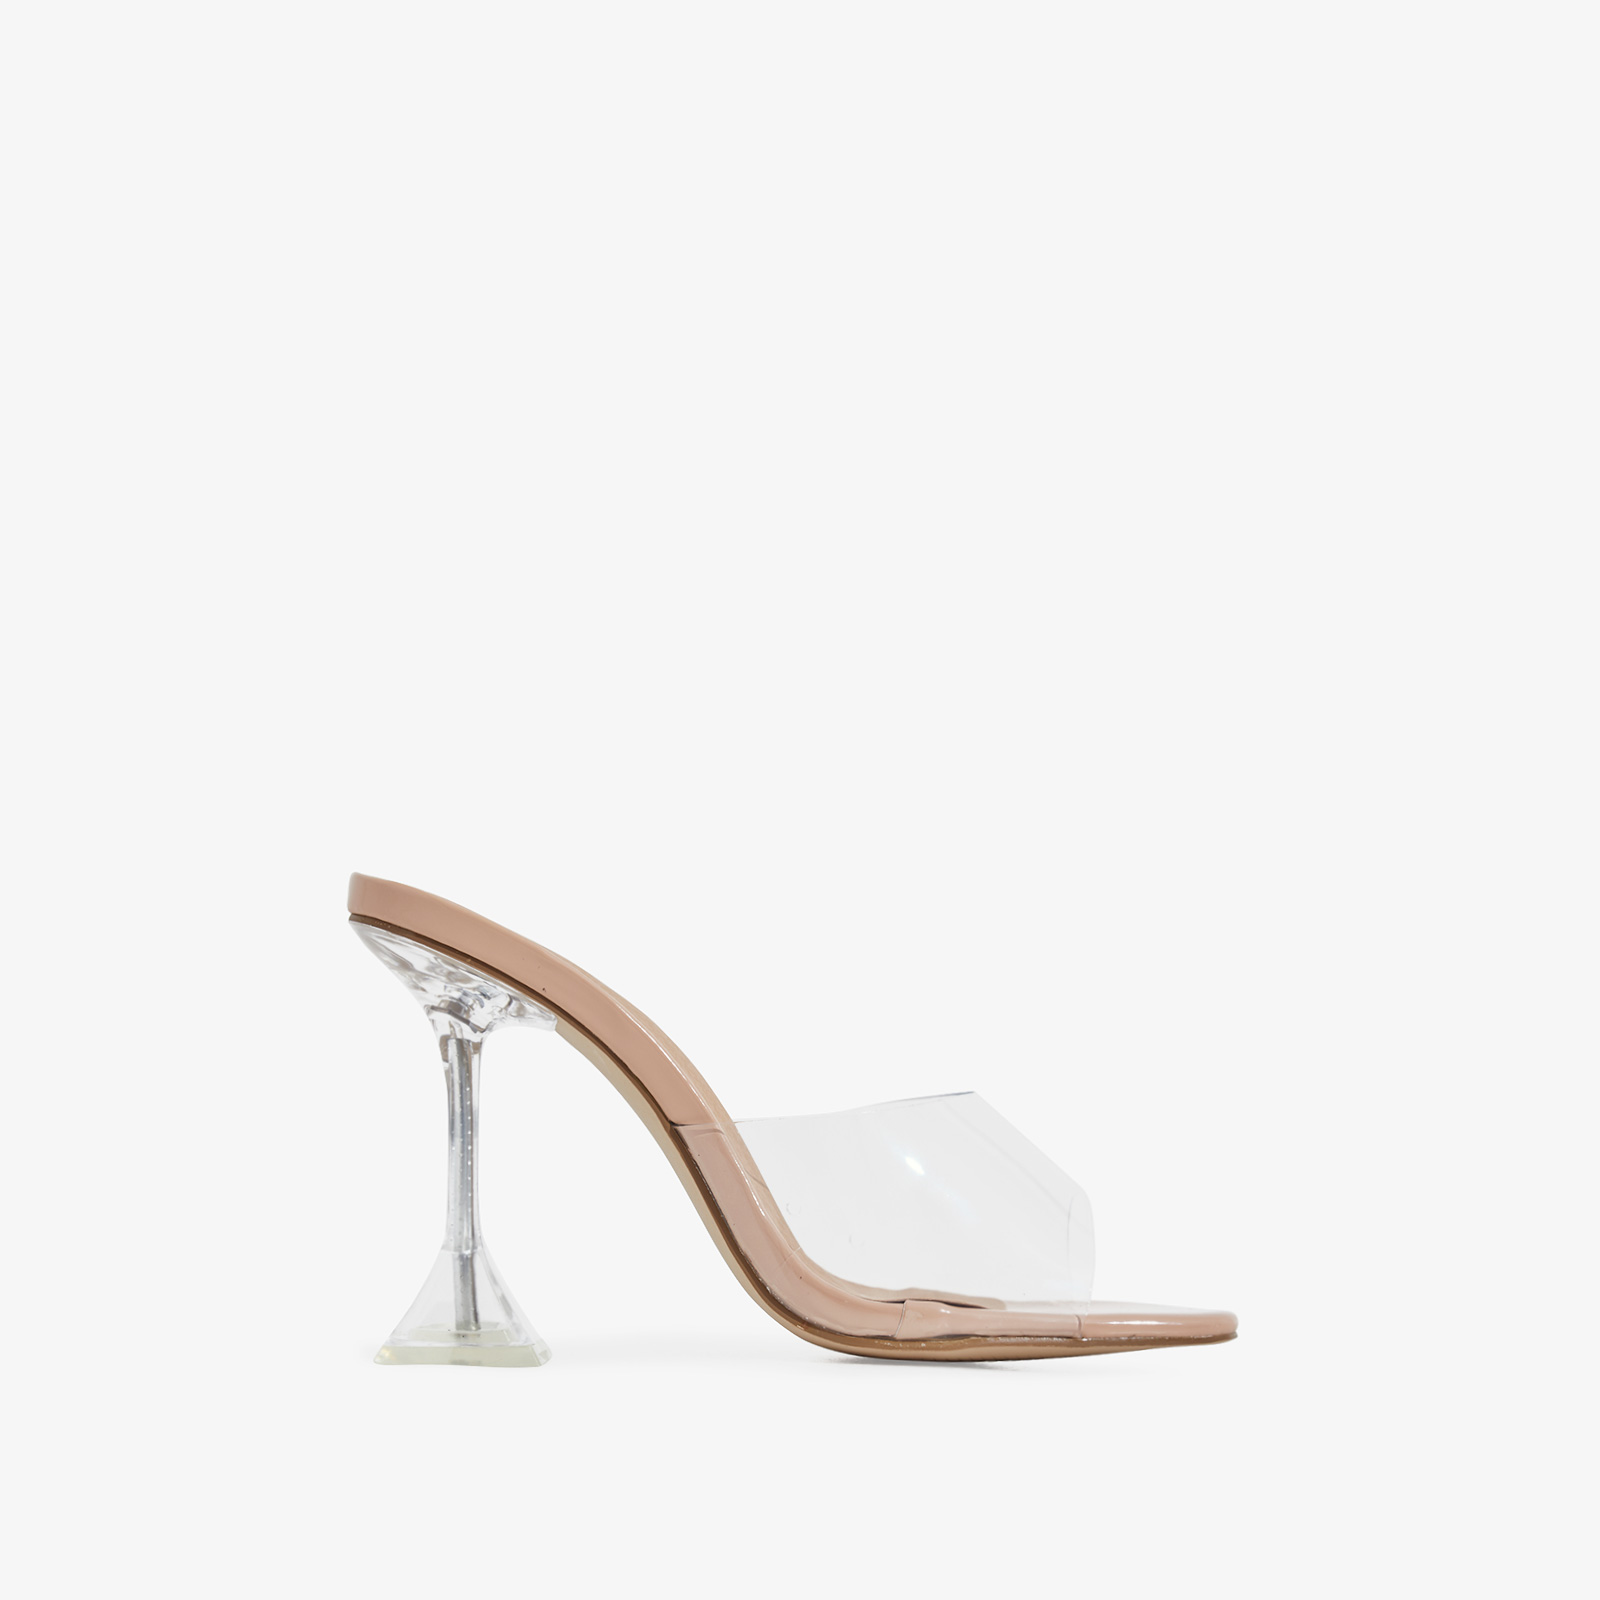 Lila Square Toe Perspex Heel Mule In Nude Patent